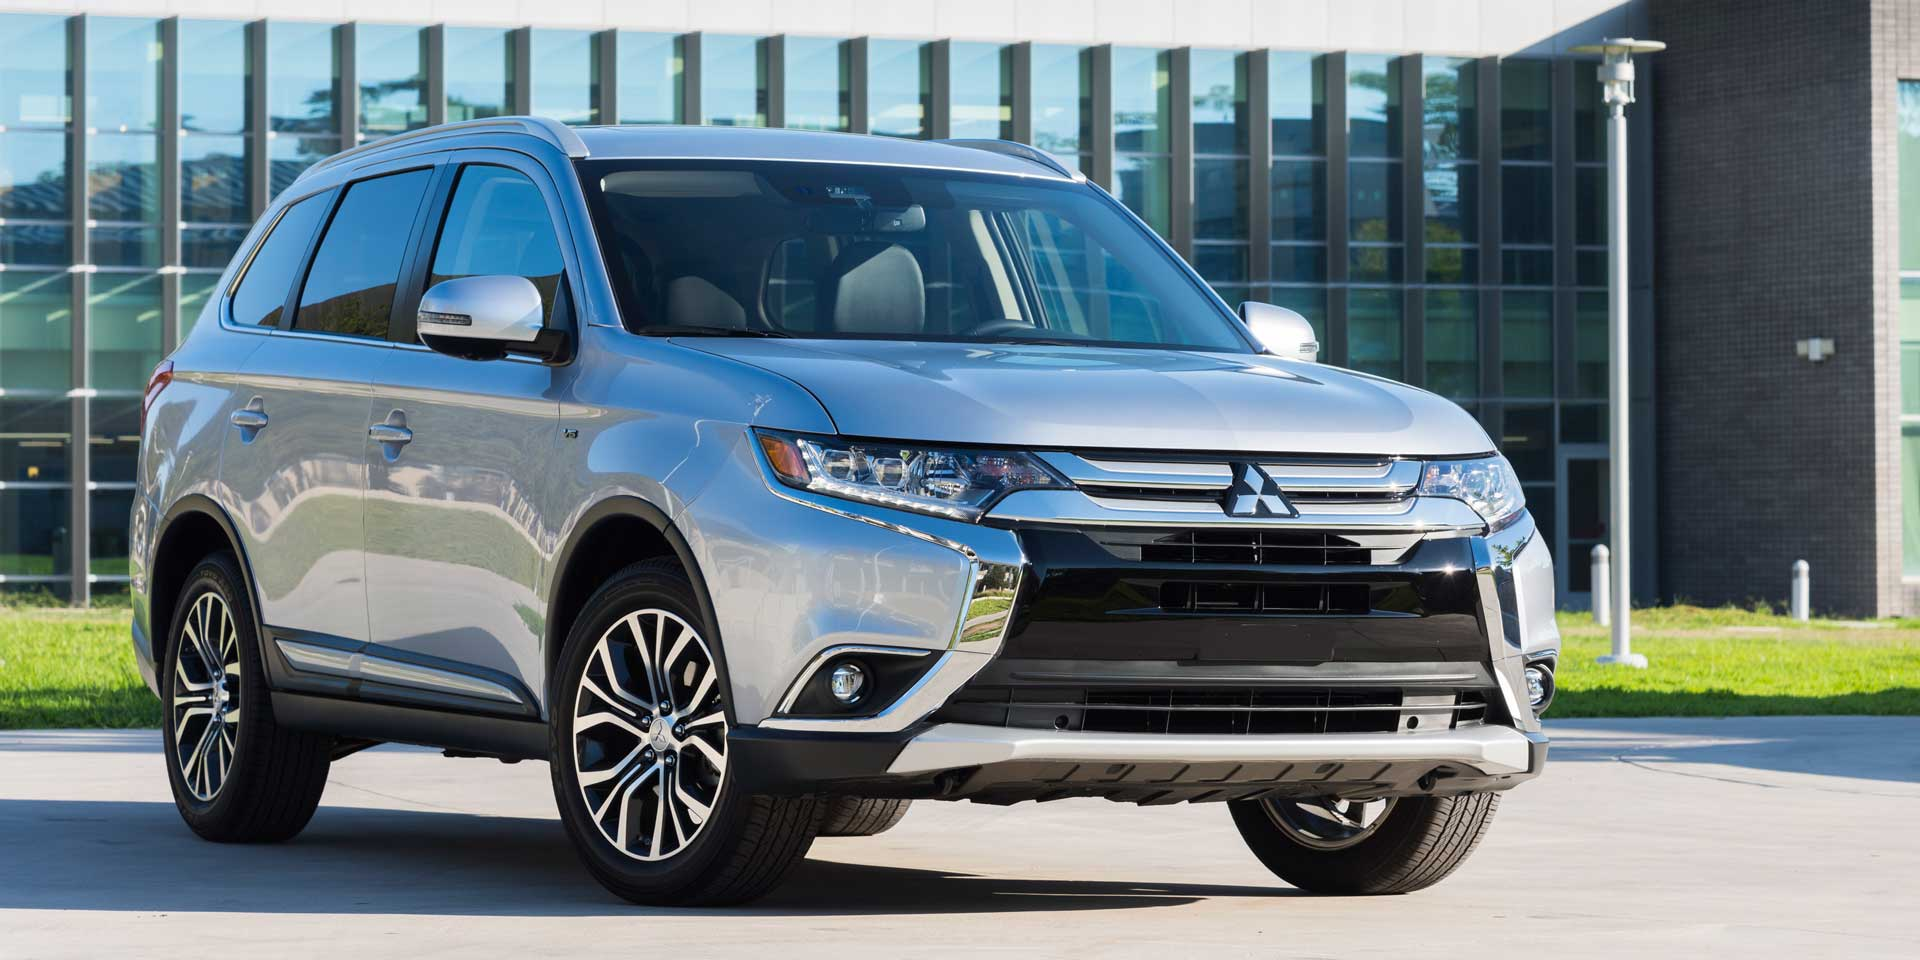 2017 Mitsubishi Outlander Vehicles On Display